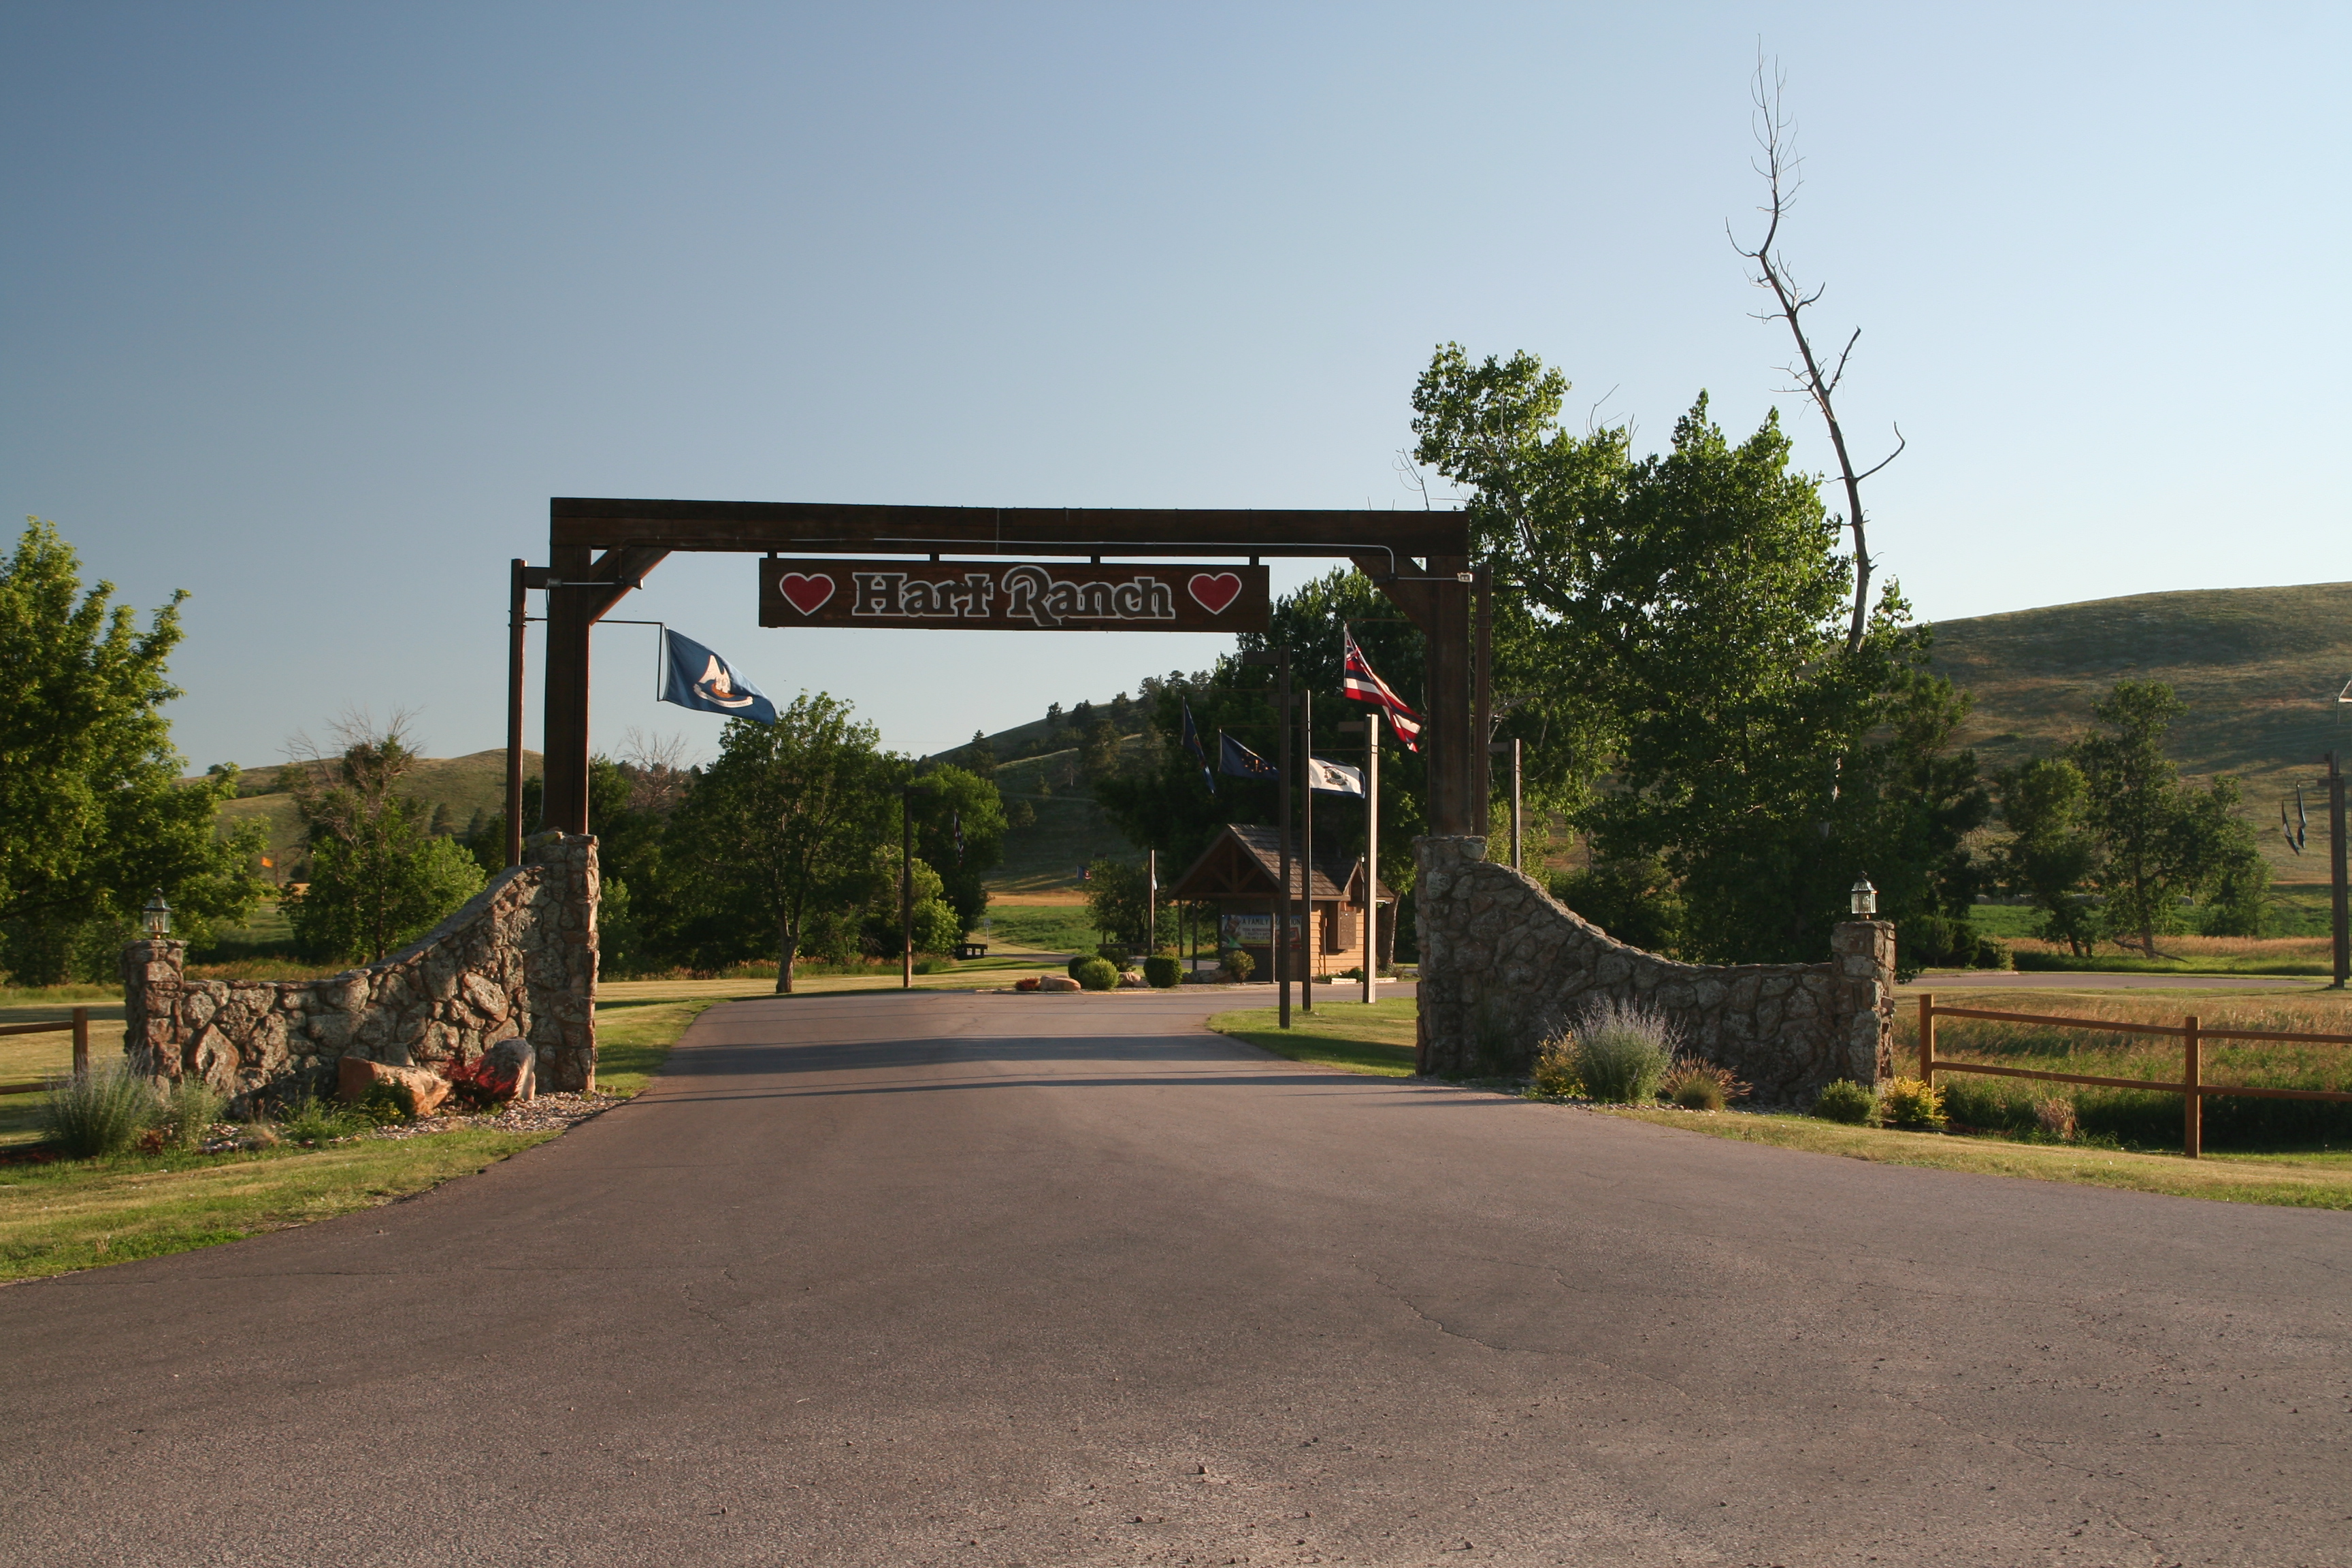 Entrance to black beauty ranch — img 3